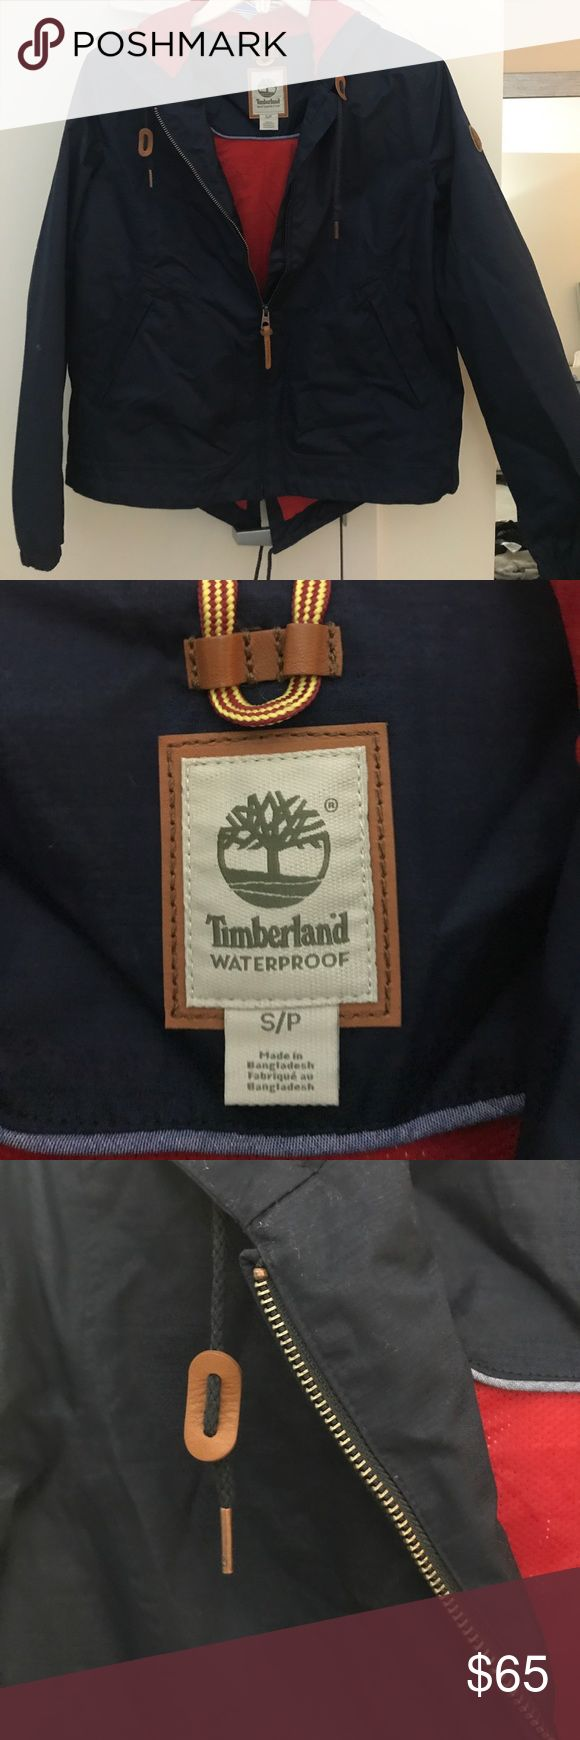 Timberland waterproof jacket Only worn once! Navy Timberland coat that has red lining and leather detailing. Great for cool nights, layering, rain, wind, etc. Timberland Jackets & Coats